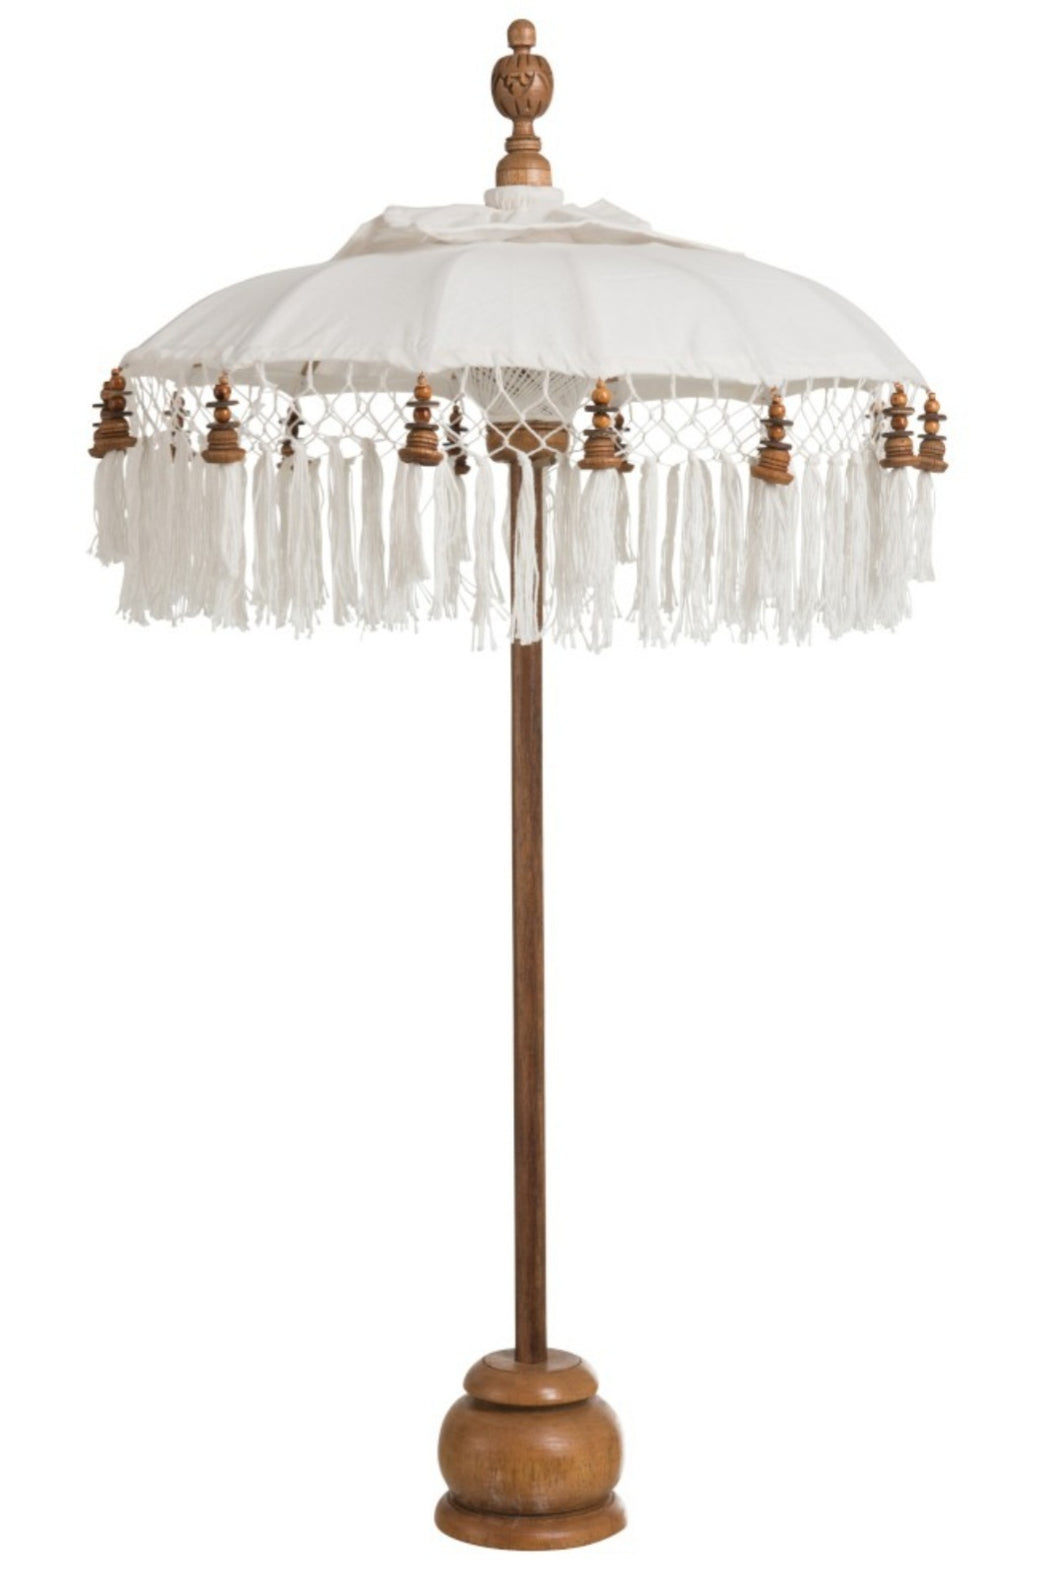 White Cotton table Parasol